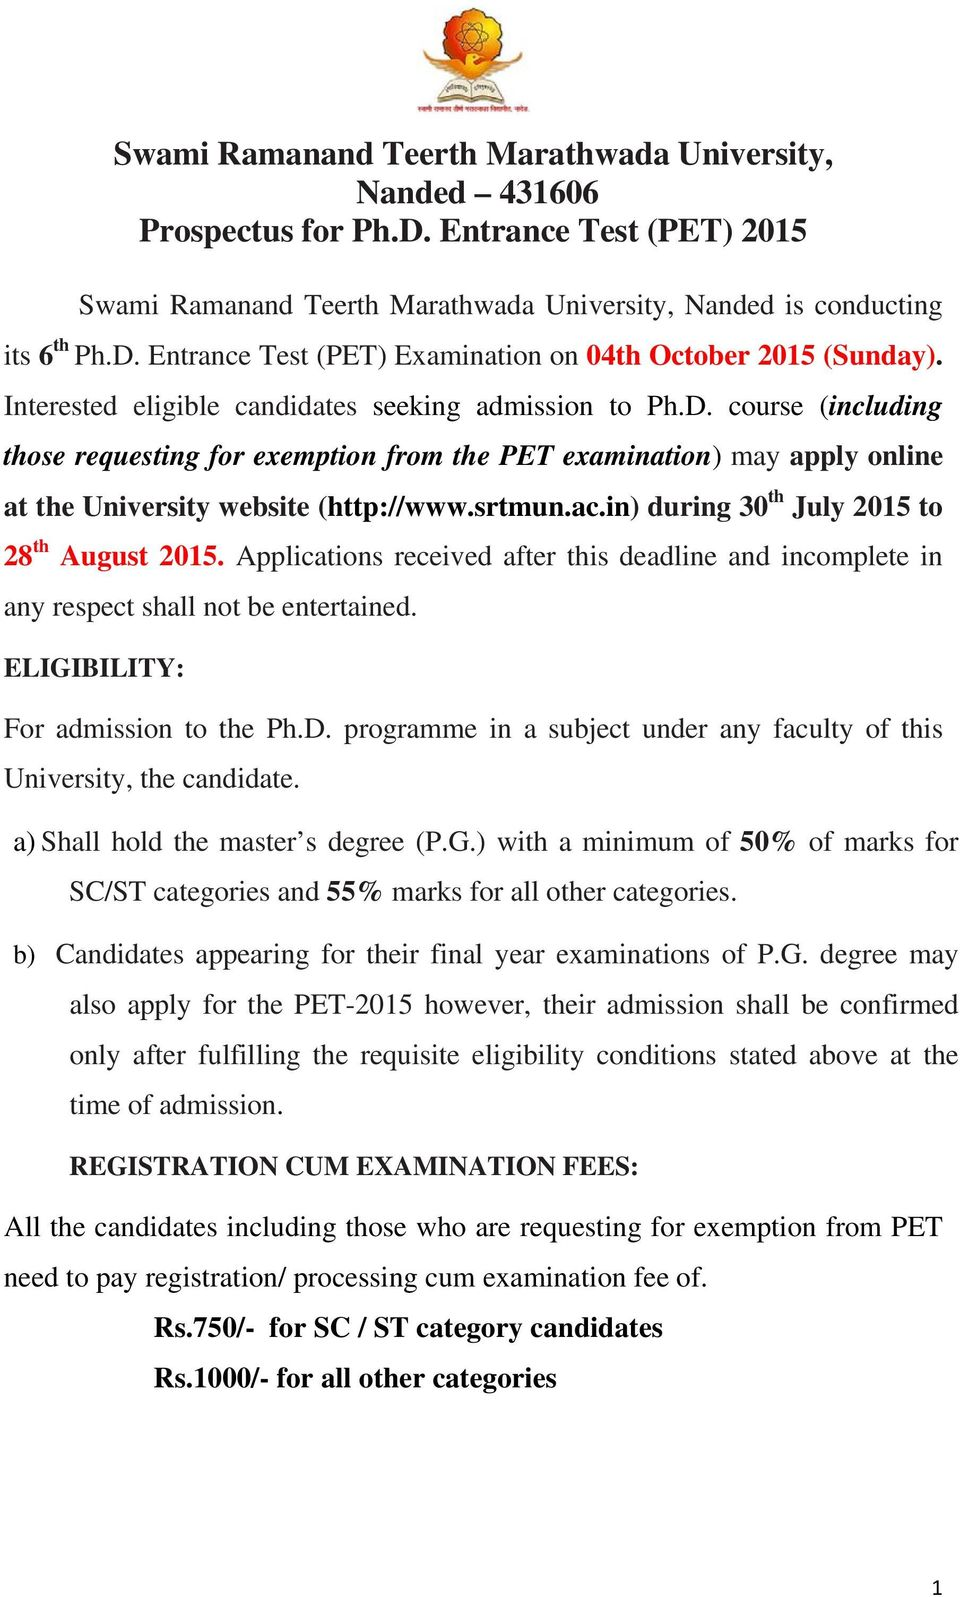 vtu phd coursework results august 2015